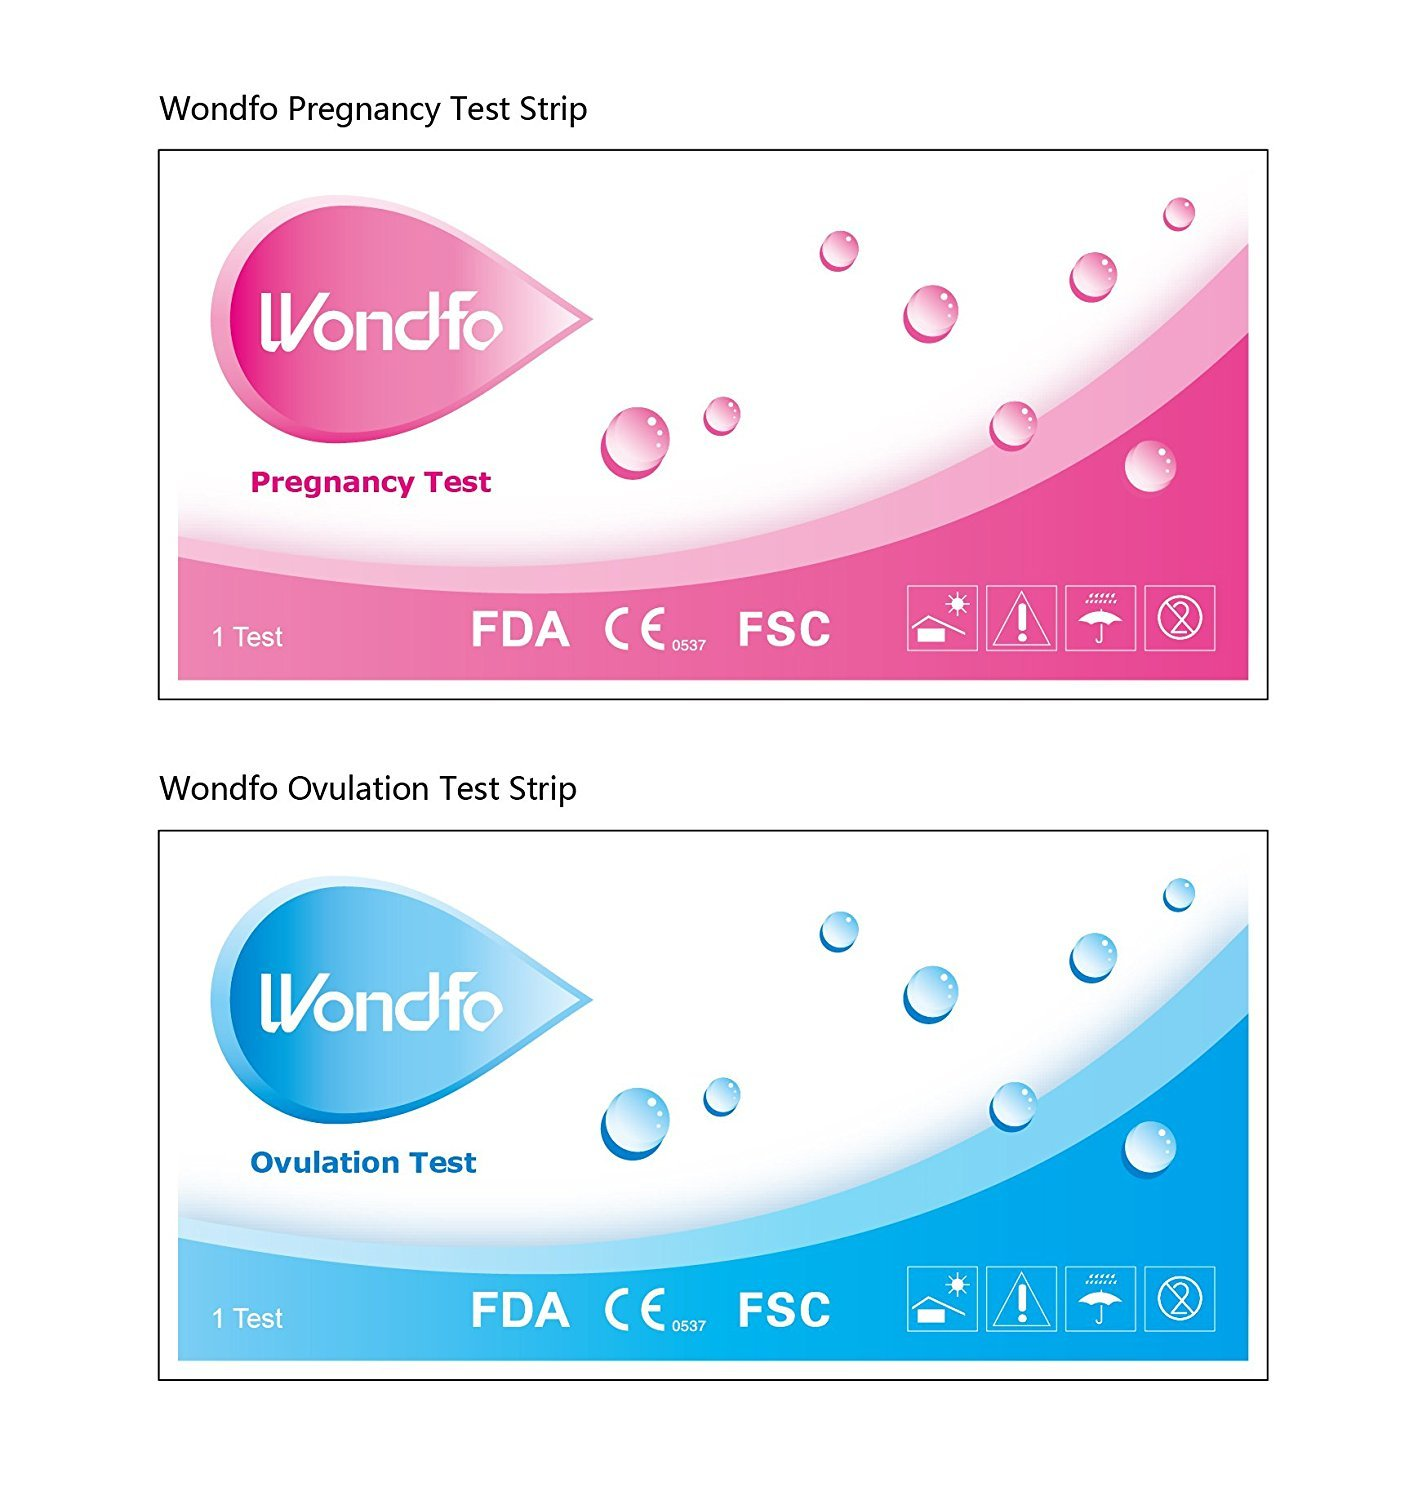 Wondfo 50 Ovulation Test Strips and 20 Pregnancy Test Strips Kit (50 LH + 20 HCG)